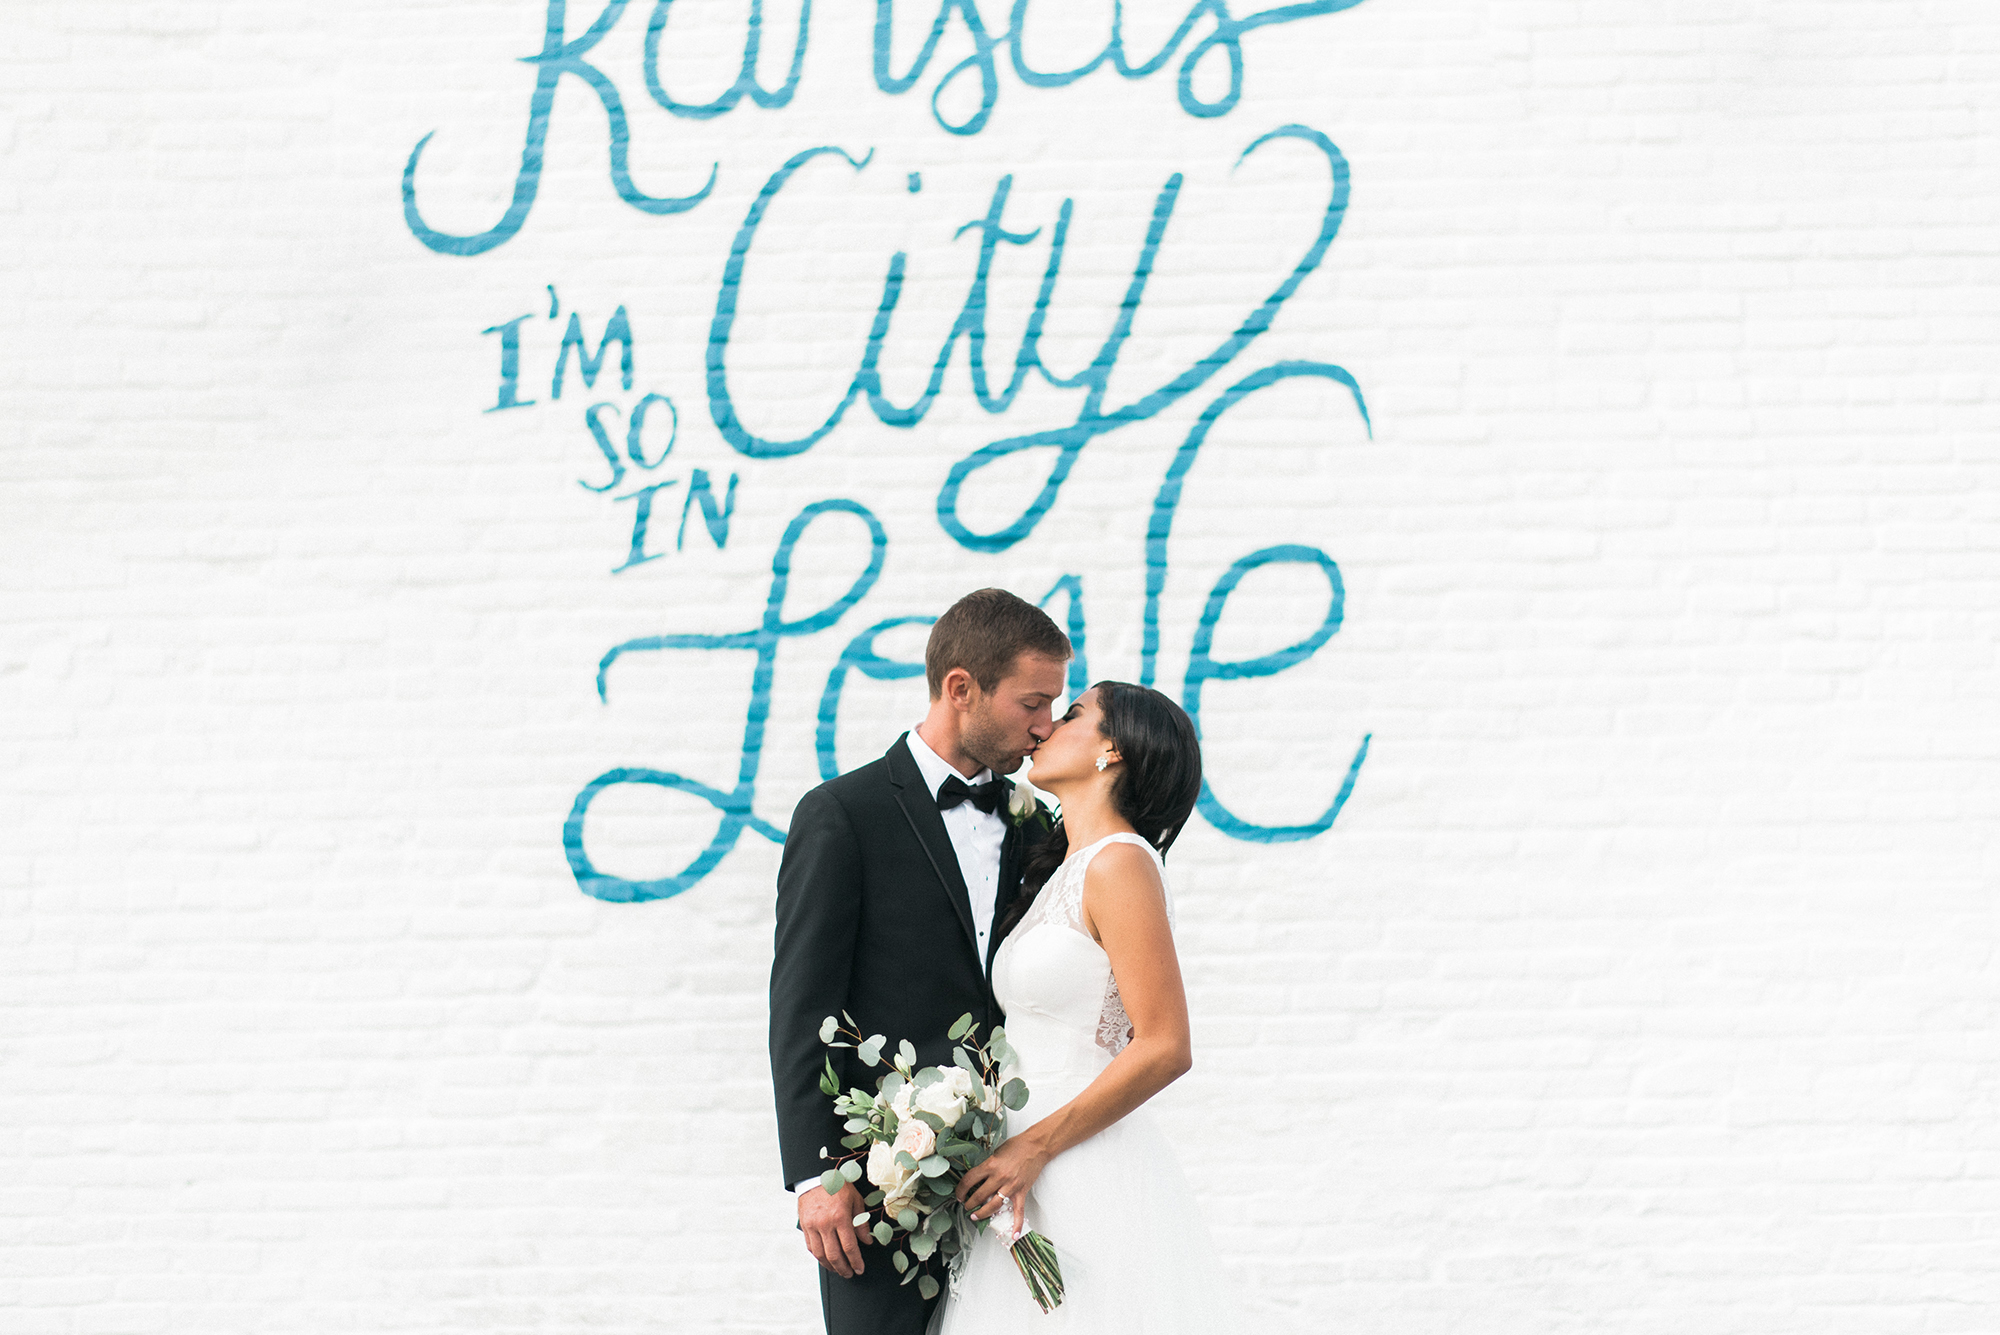 Kansas City I'm So in Love Wall Wedding Photographer